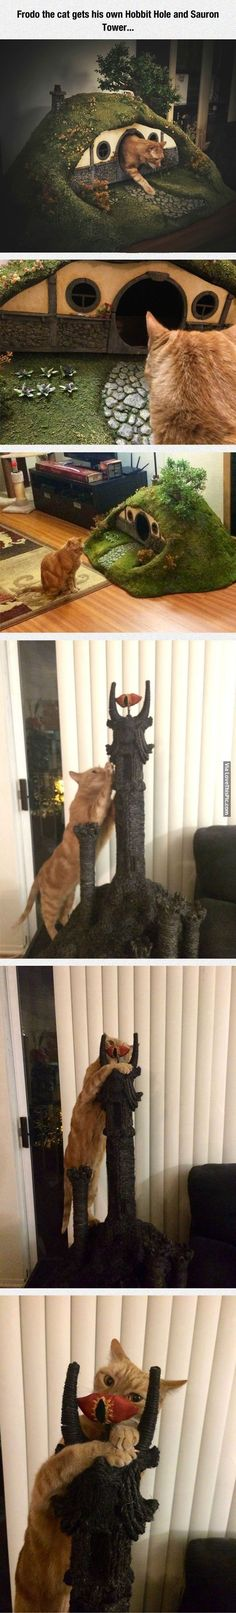 Frodo The Cat. I don't know if our cats would actualy play with these #CatFunny